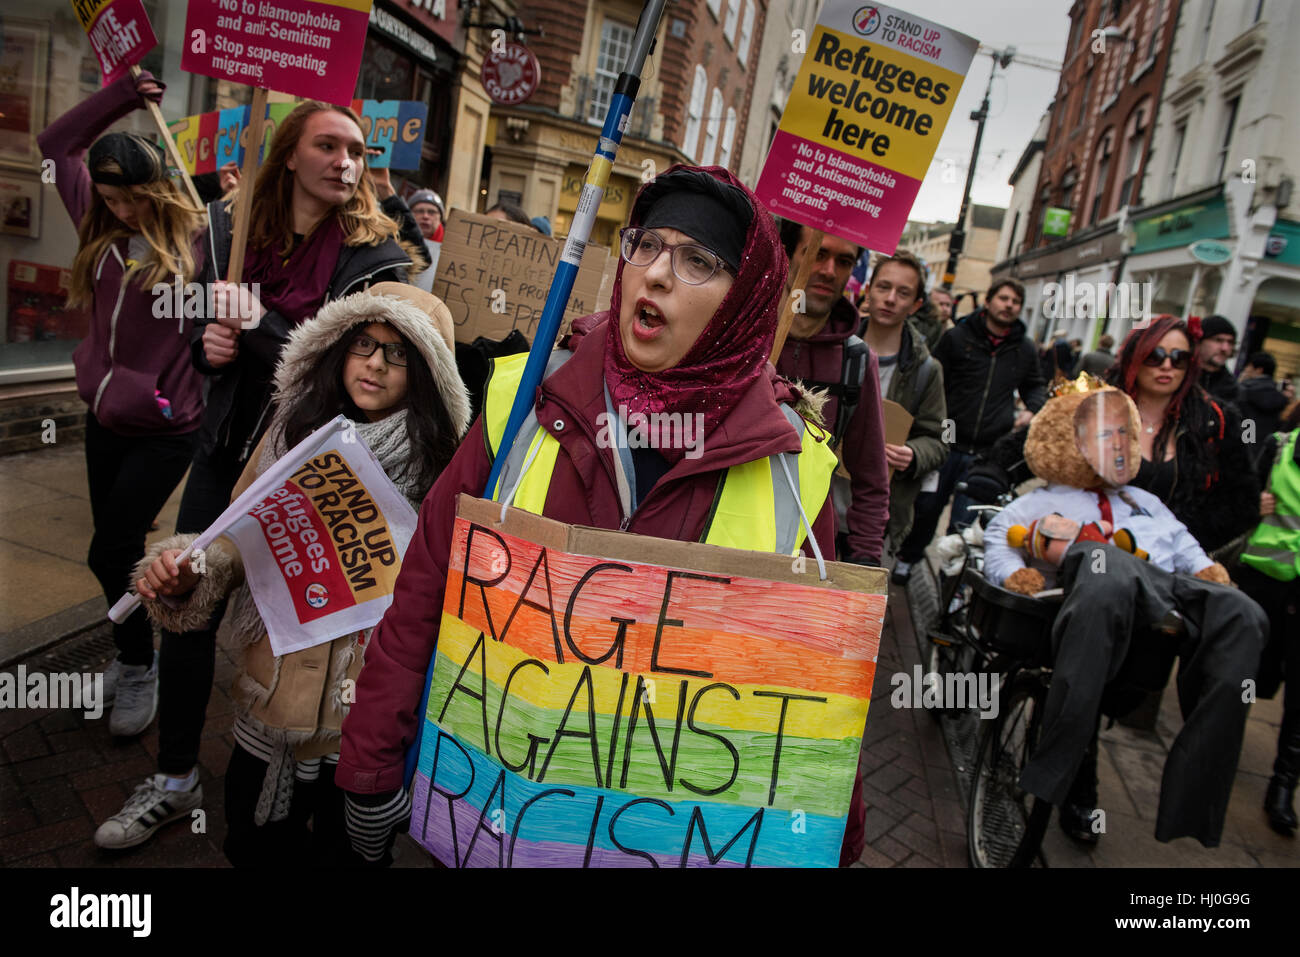 Cambridge, UK. 21st January, 2017. Demonstration in Cambridge, England, UK against the policies of newly installed - Stock Image